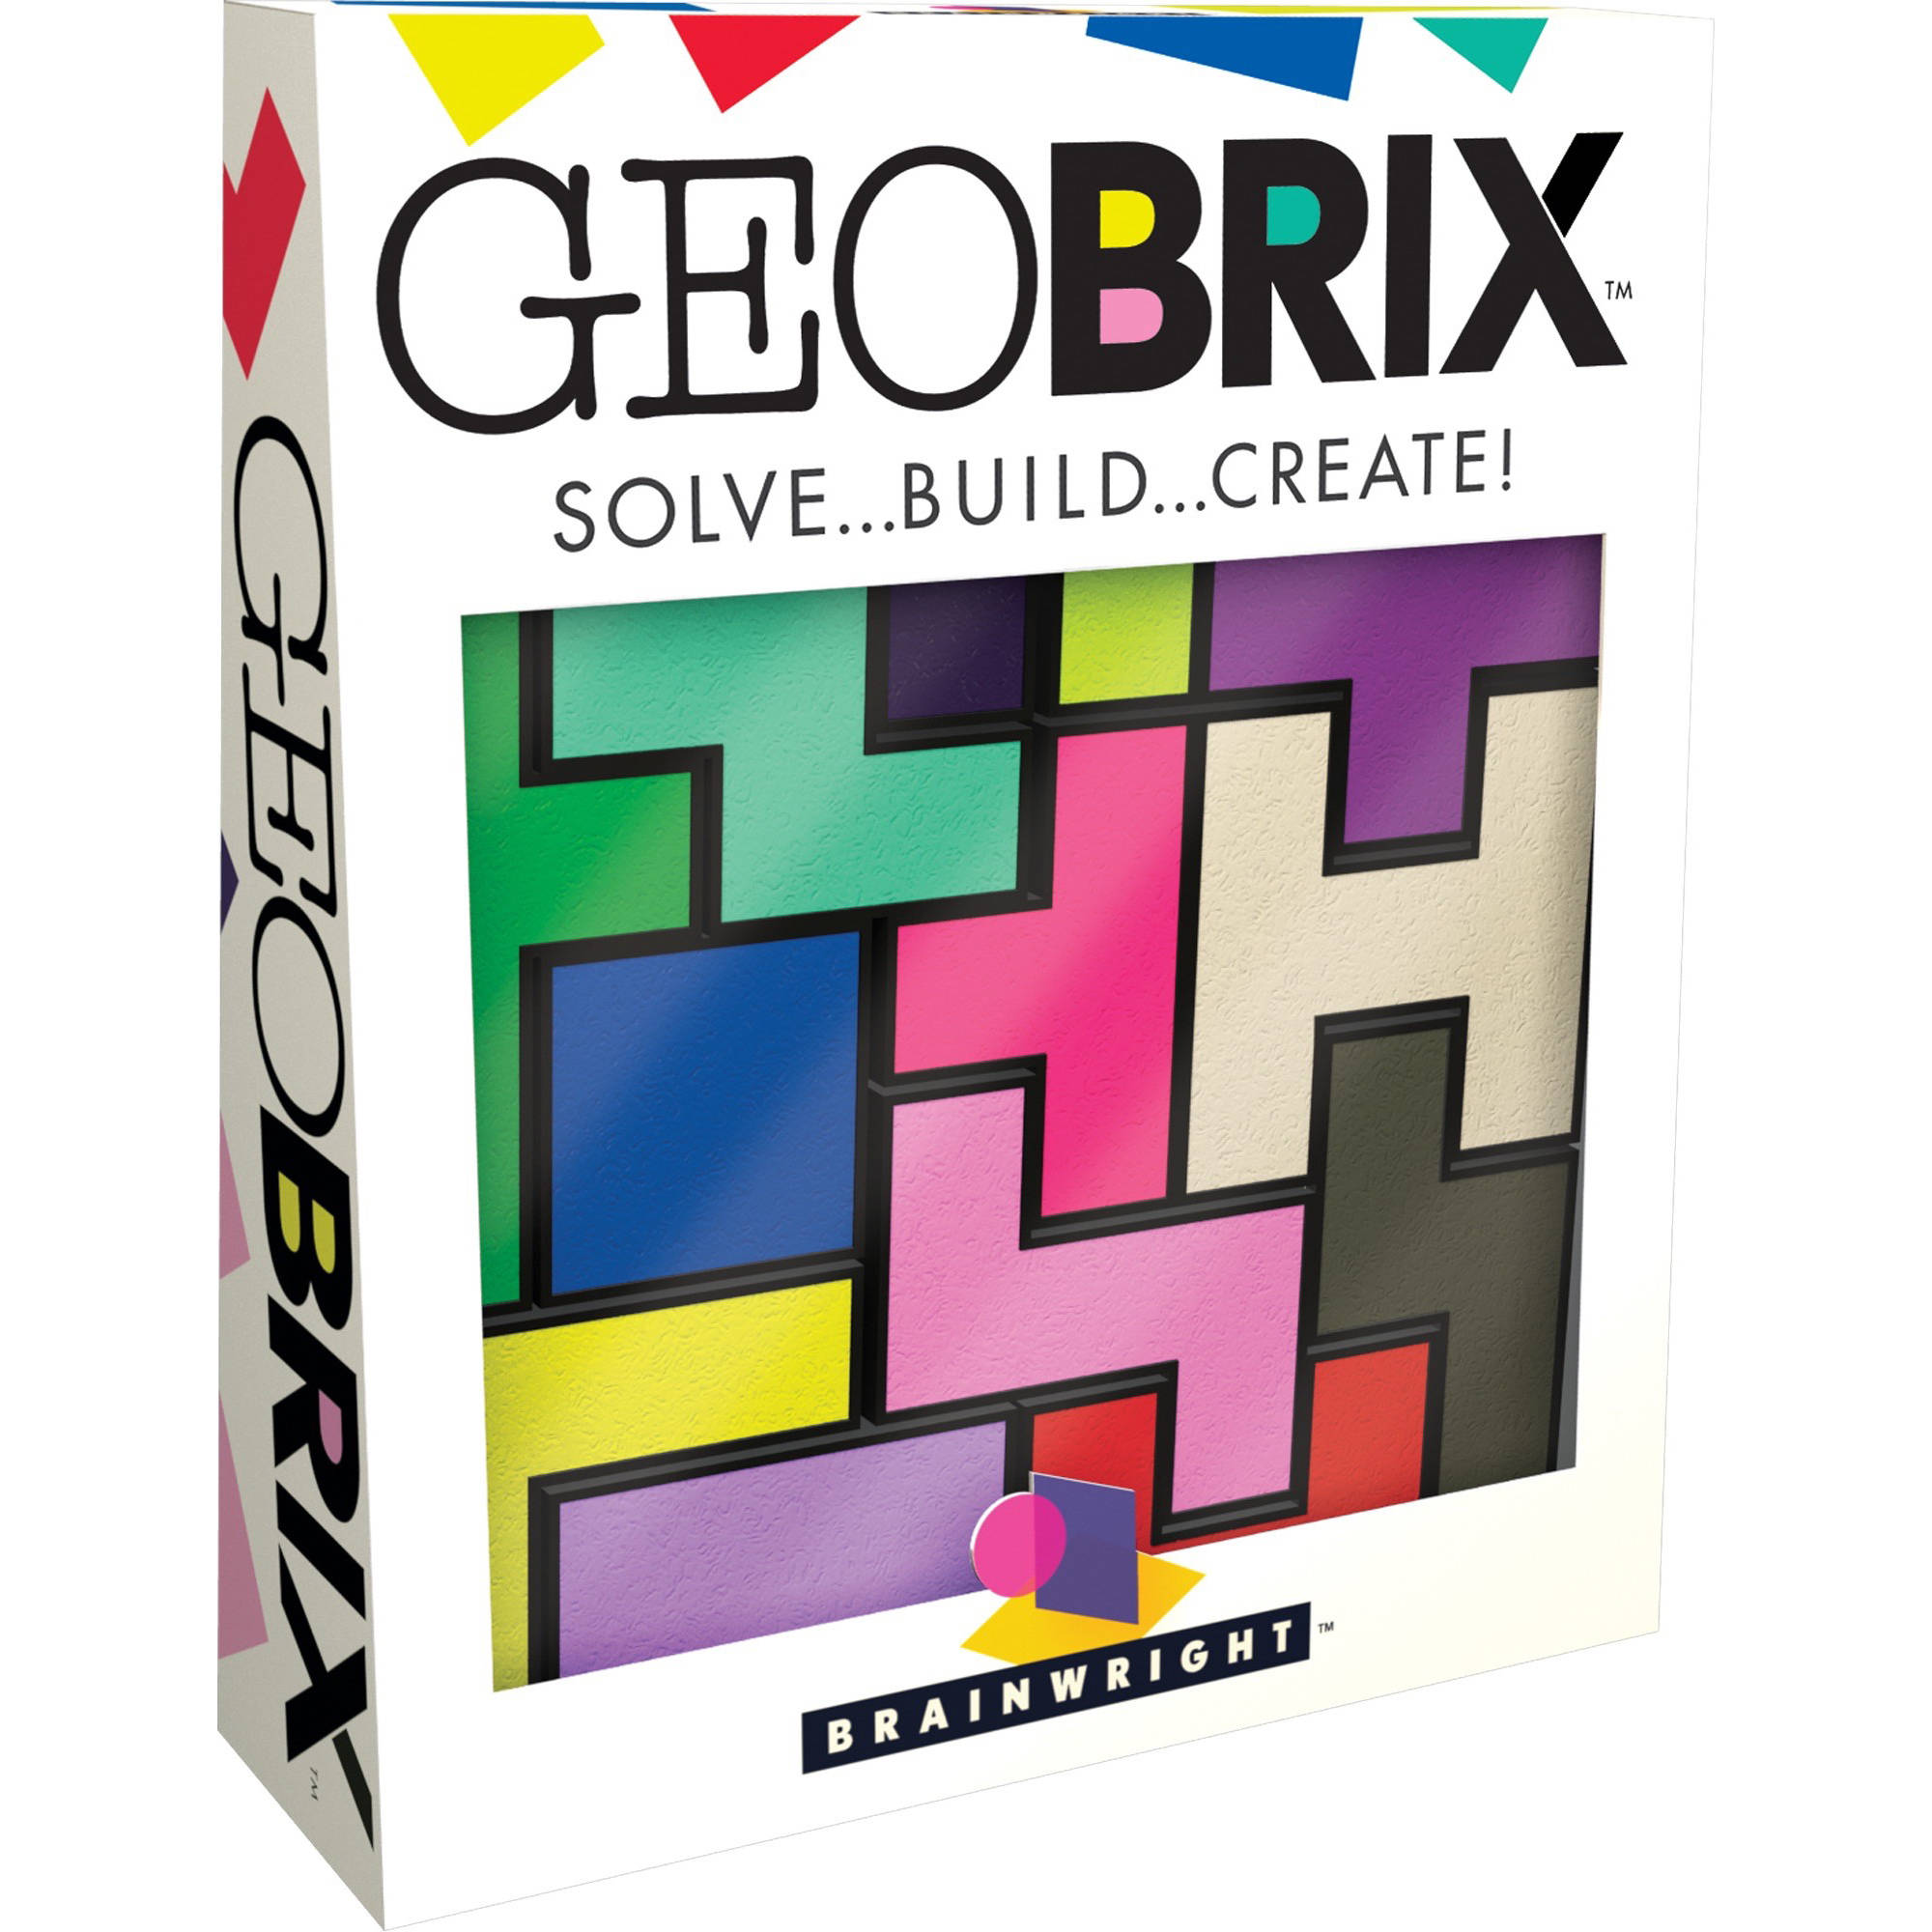 GeoBrix: Solve, Build, Create